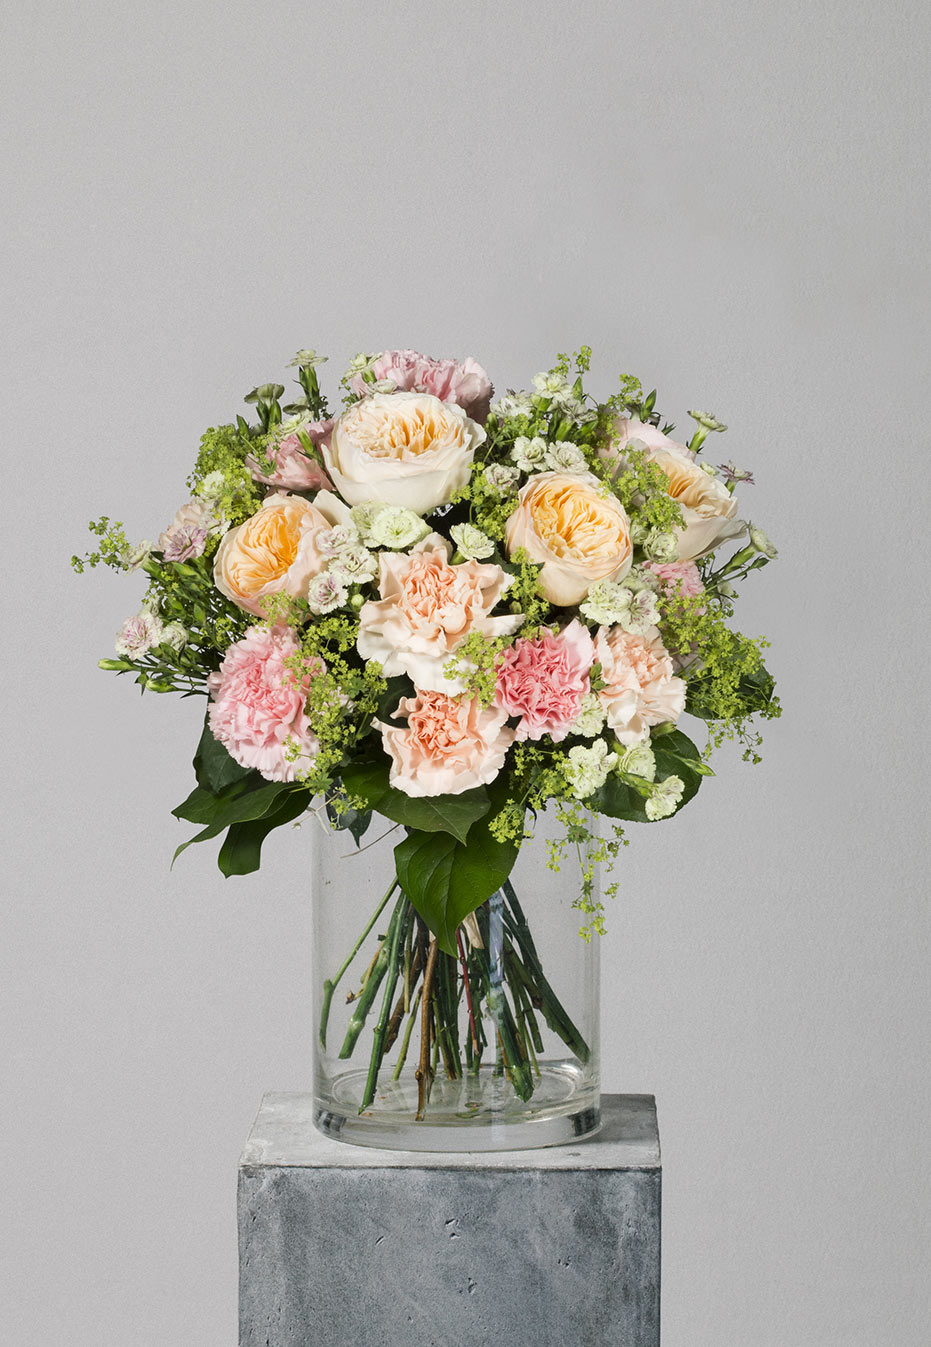 flower bouquet of garden rose and carnation by flannel flowers